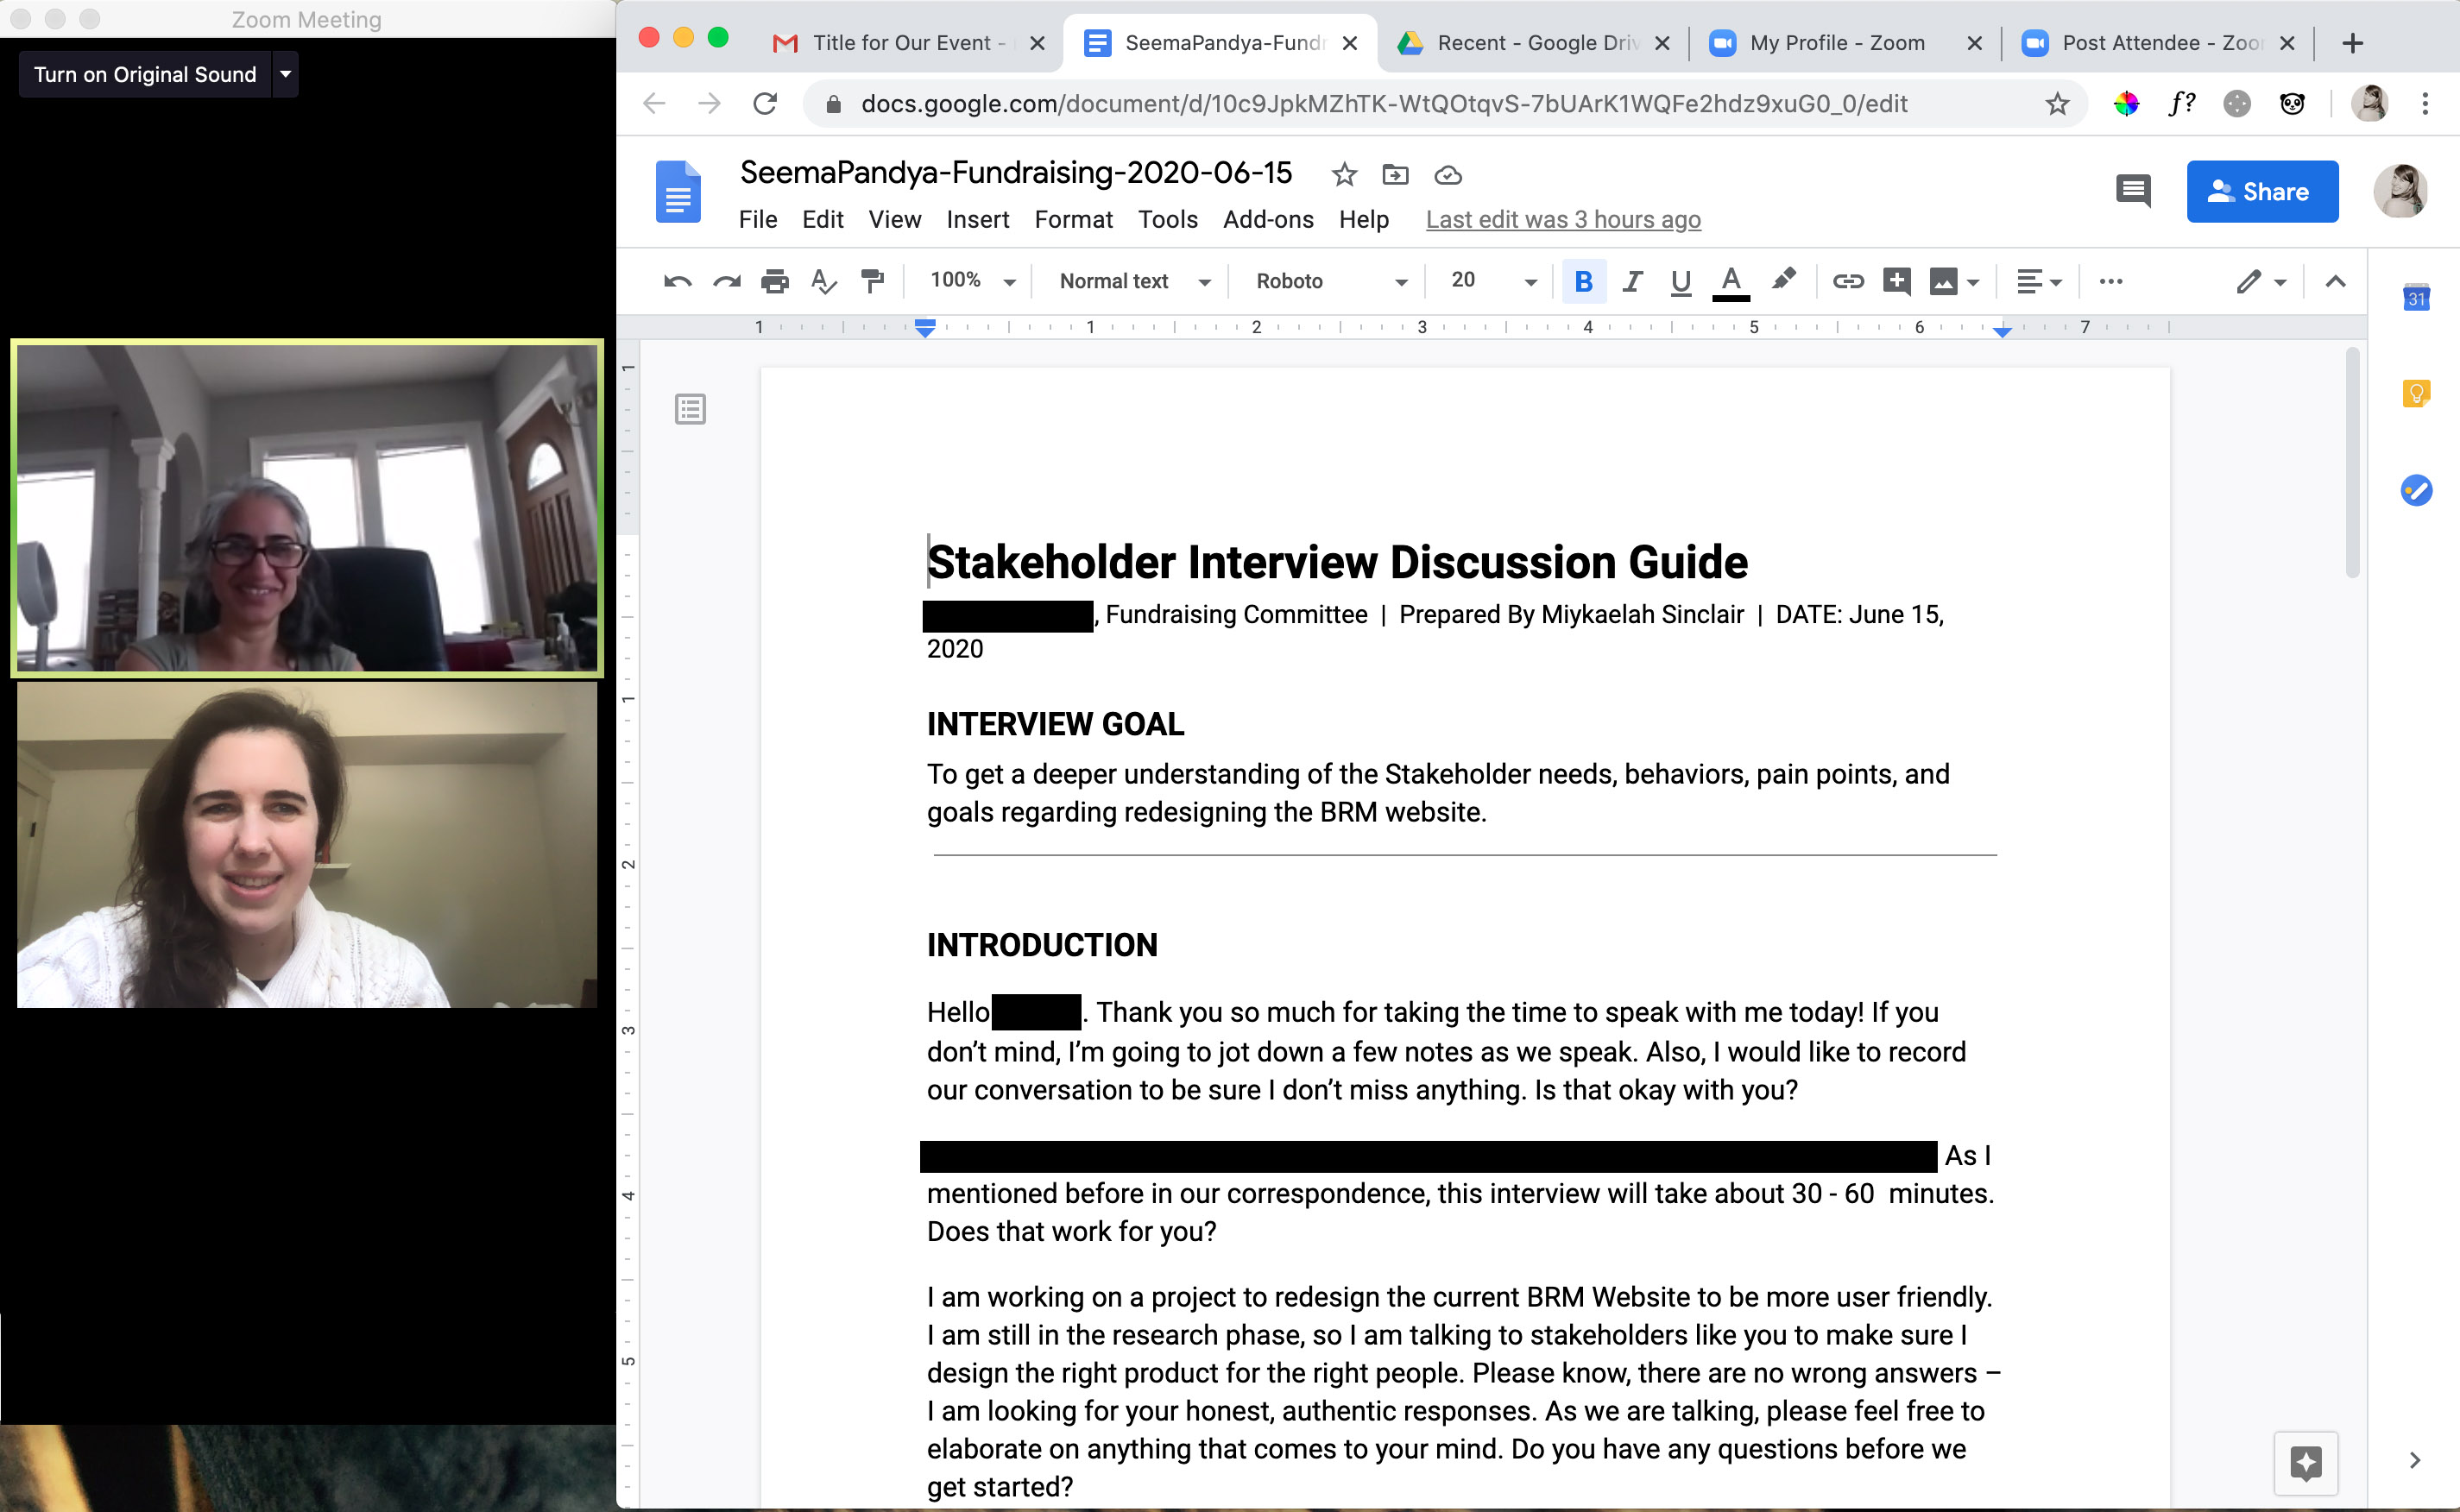 Laptop screen showing the image of  interviewer and interviewee video conferencing  on the left with the interviewer's script on the right